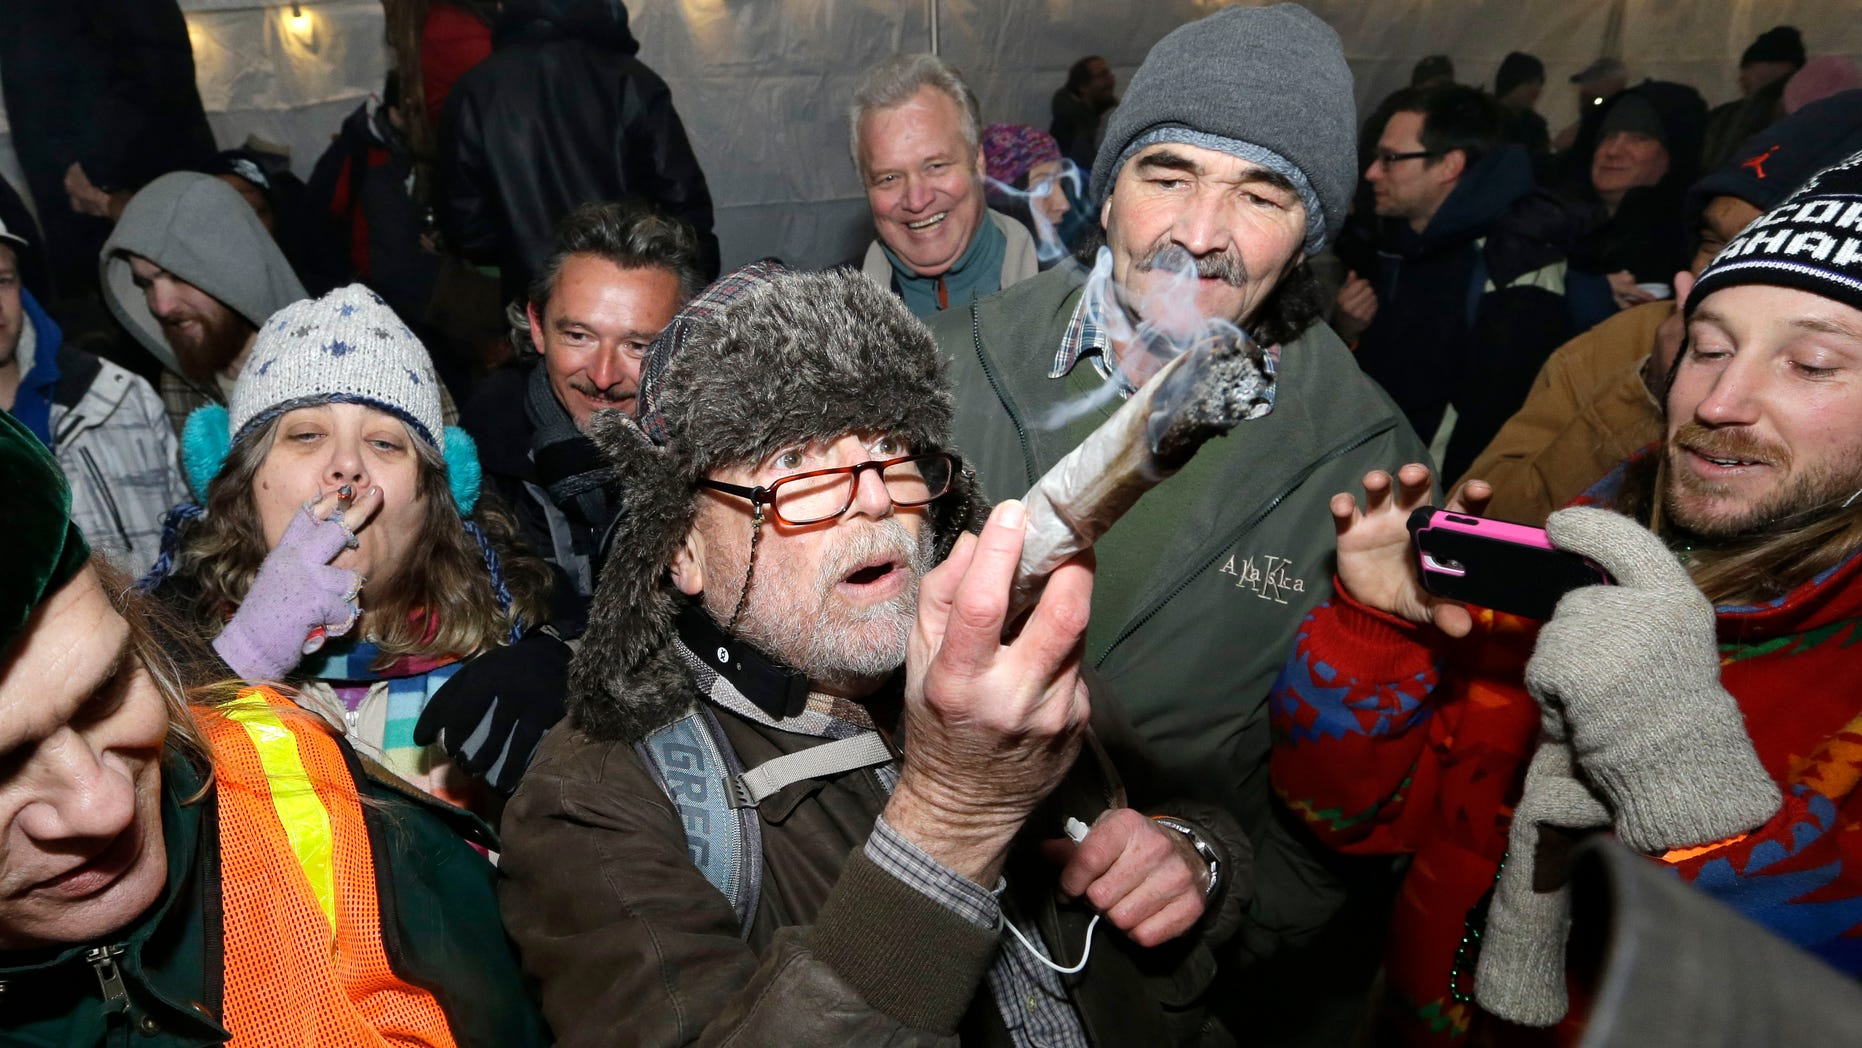 Dec. 6, 2013: A partier looks over a marijuana joint, made from a full ounce of pot, before taking a hit on it at a pot party at the Seattle Center, in Seattle.